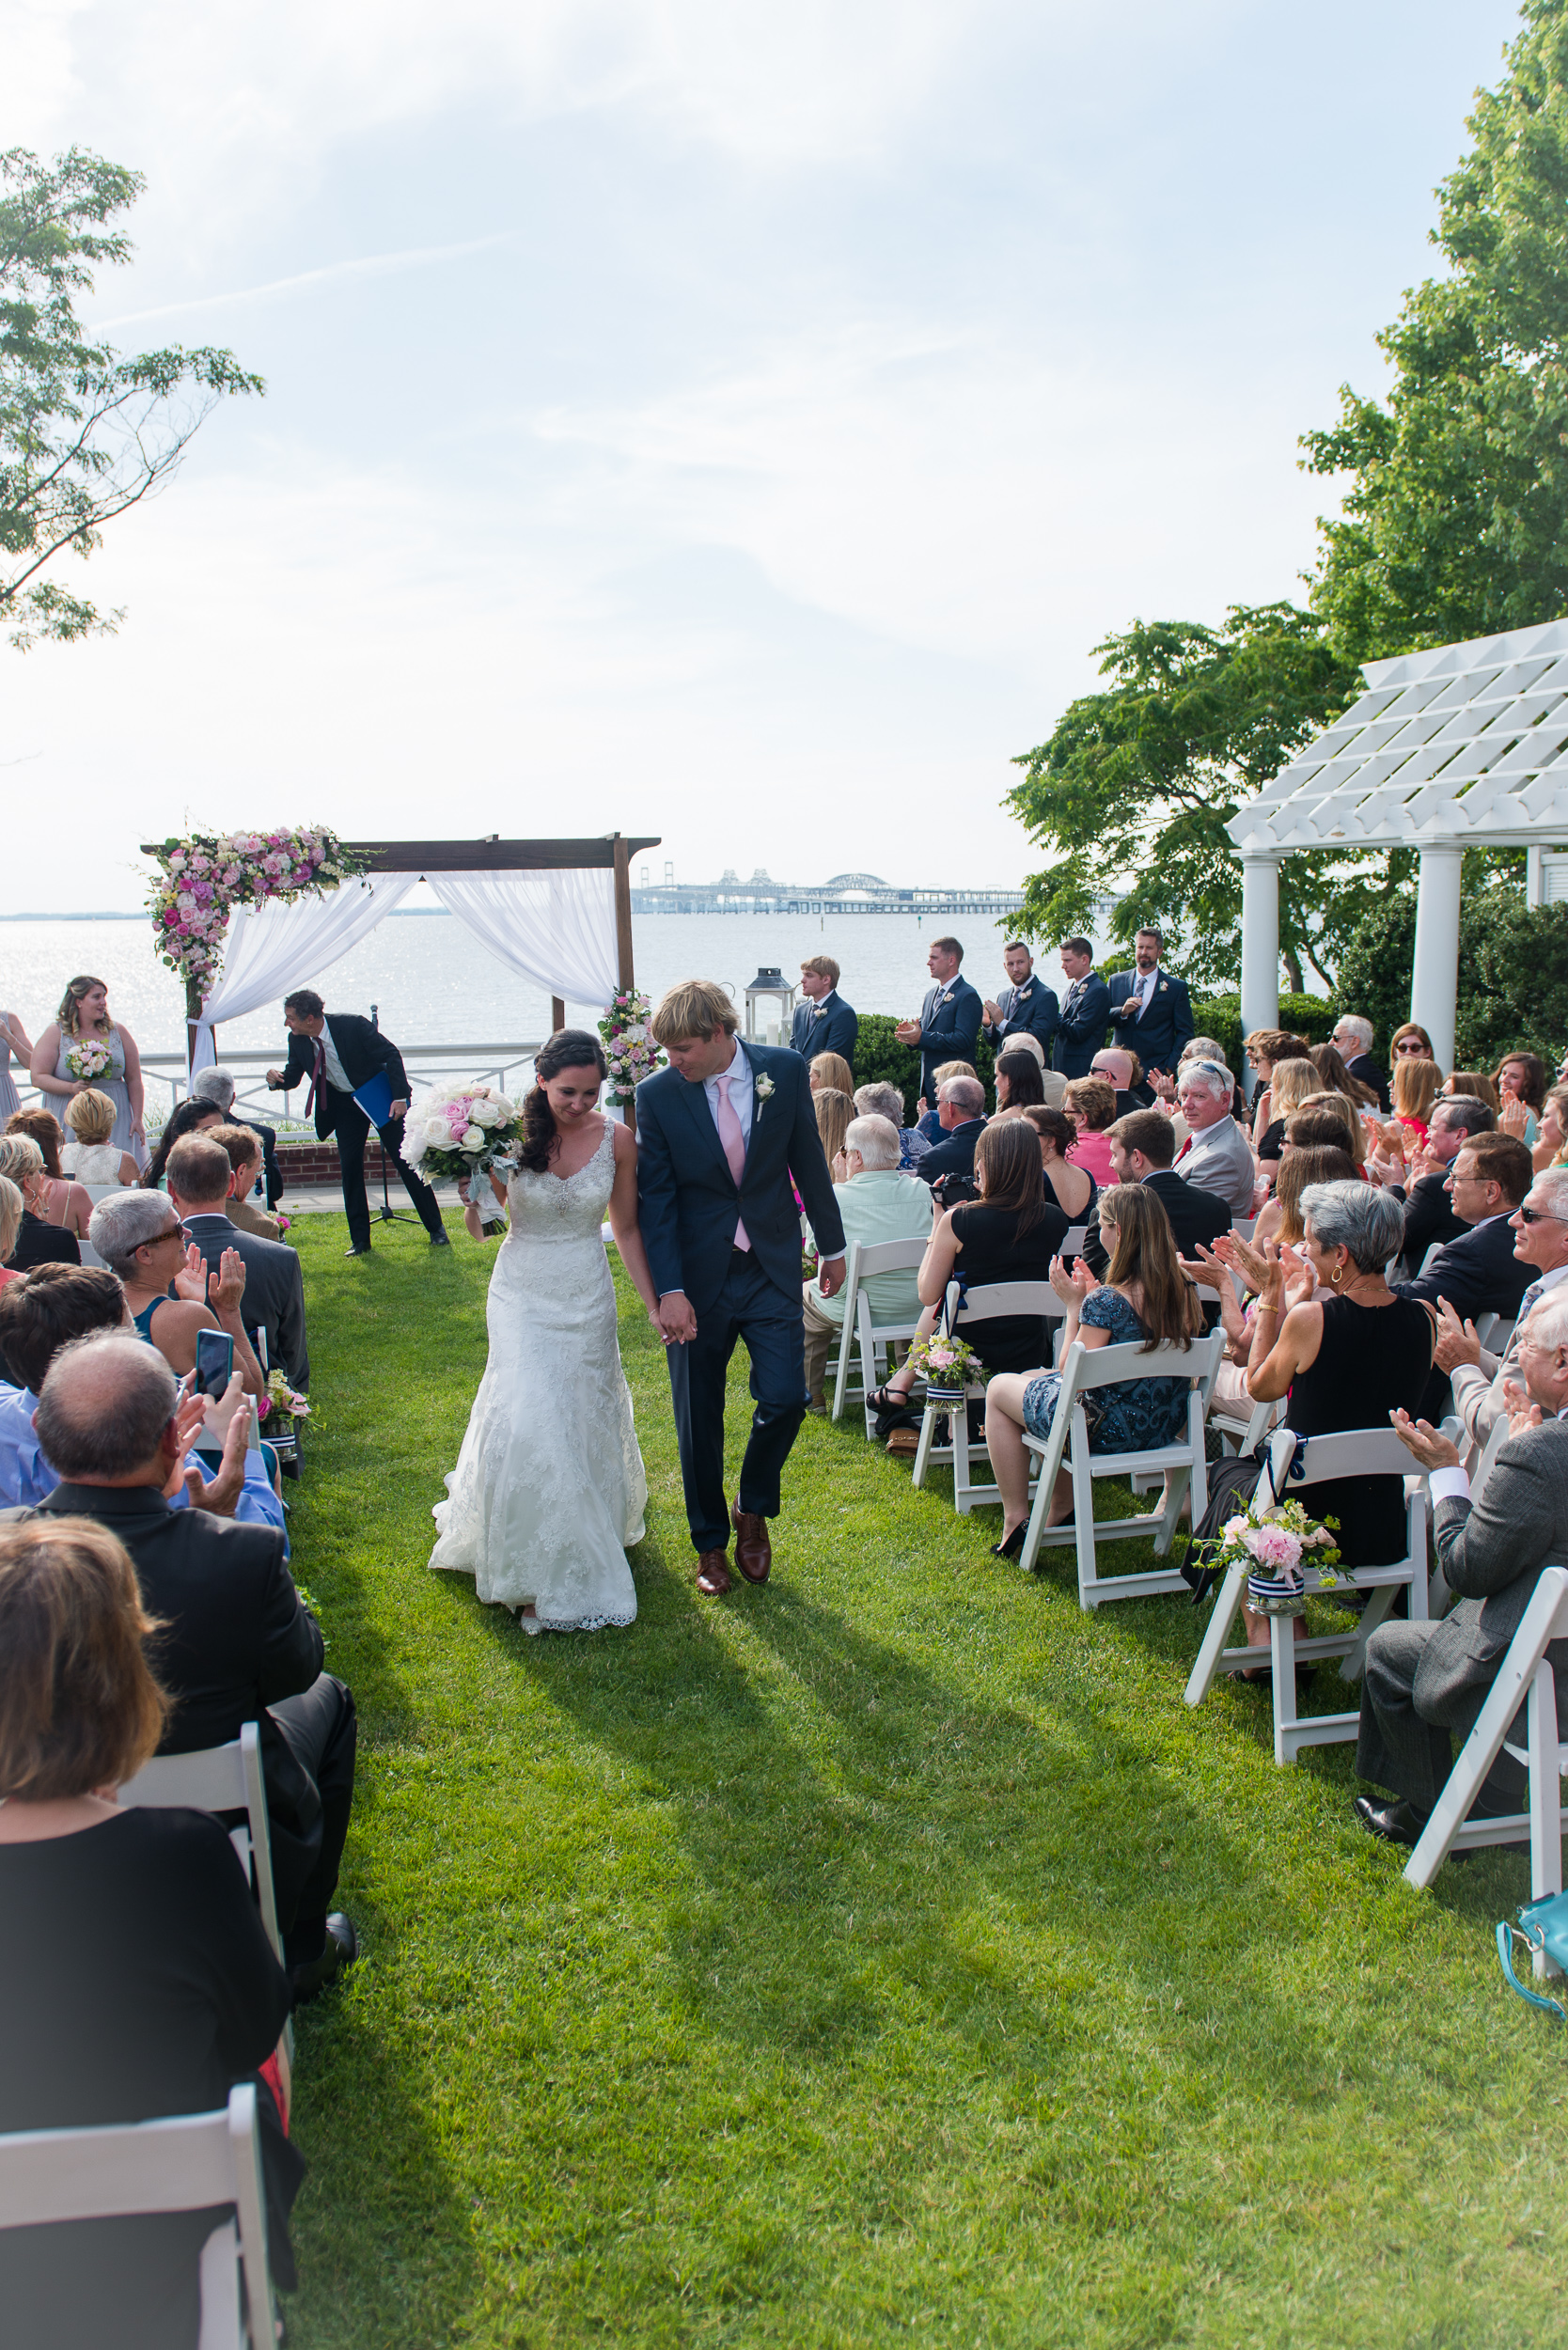 the bride and groom process up the aisle as husband and wife after their wedding ceremony on the shore at the chesapeake bay beach club in stevensville, md